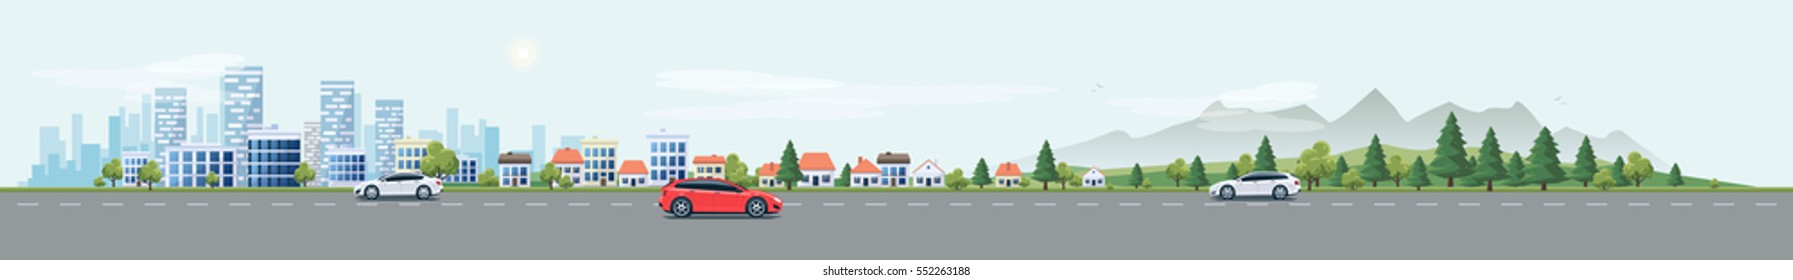 Flat vector cartoon style illustration urban landscape street with cars, skyline city office buildings, family houses in small town and mountain with green trees in background. Traffic on the road.